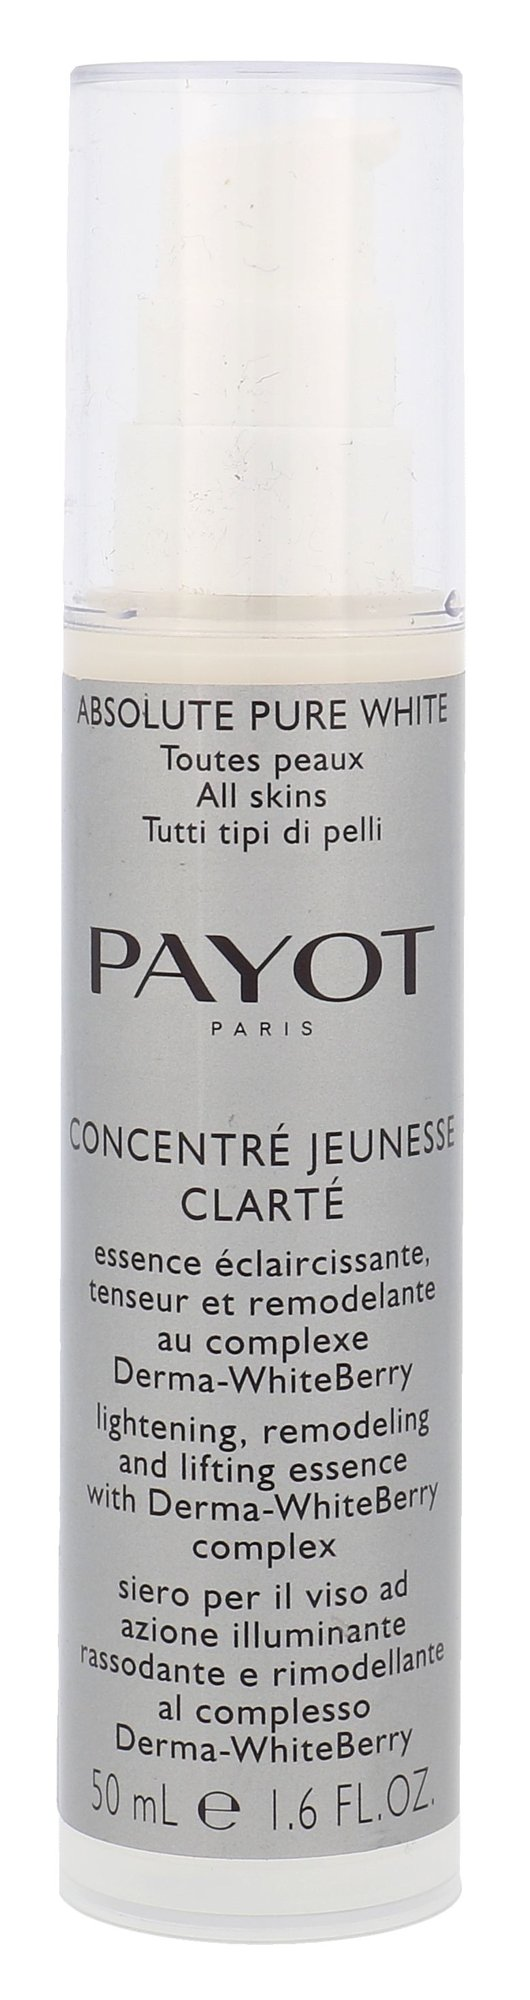 PAYOT Concentre Jeunesse Clarte Cosmetic 50ml